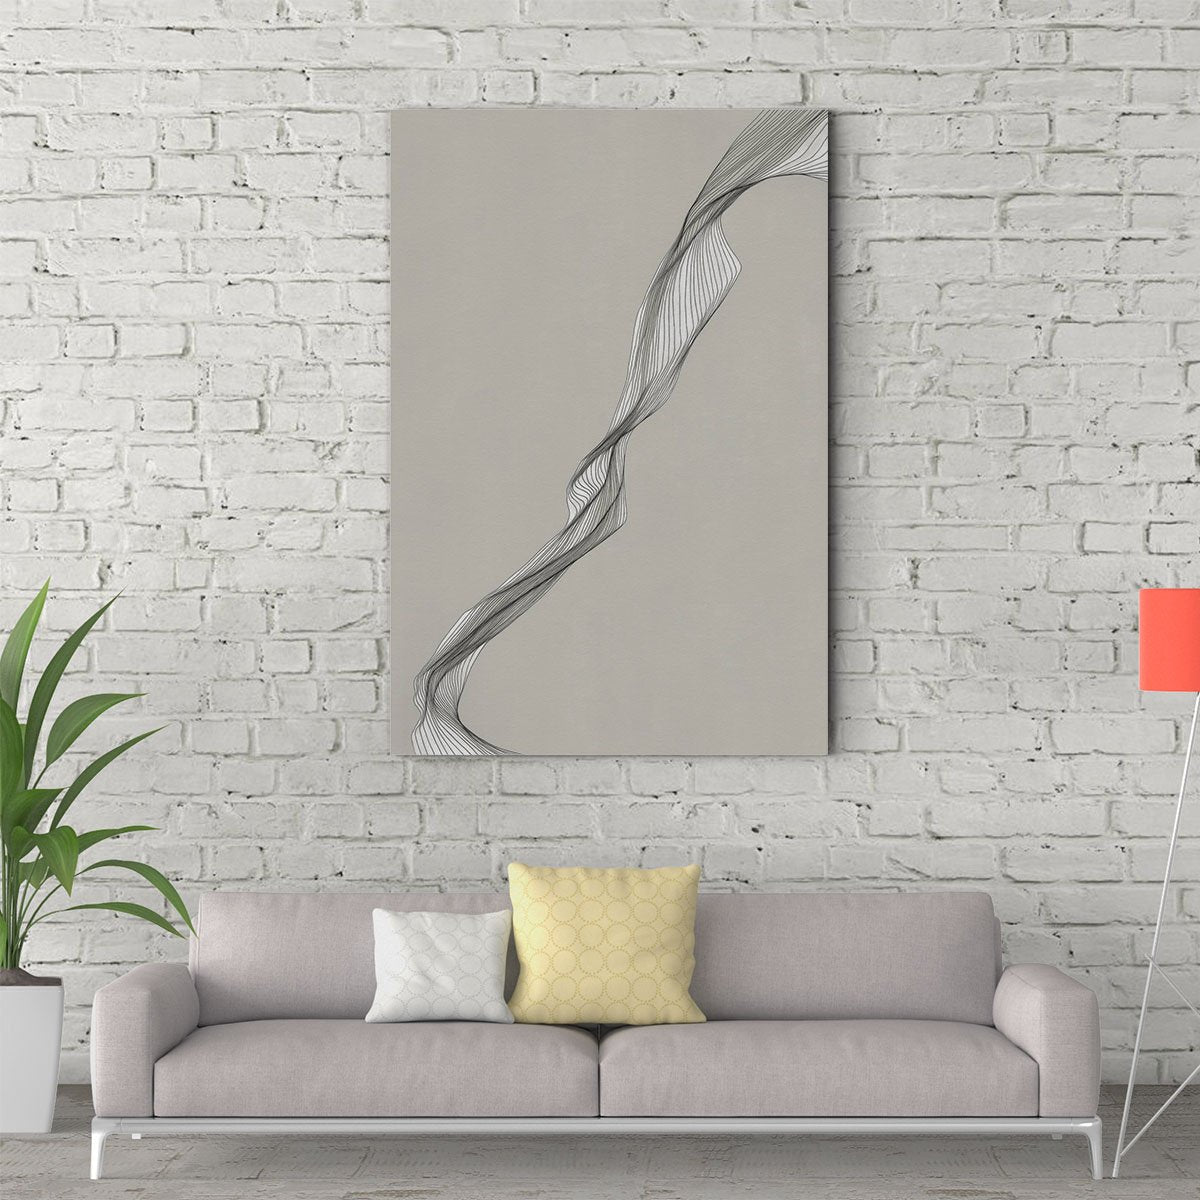 Black and white lines abstract decorative painting 002